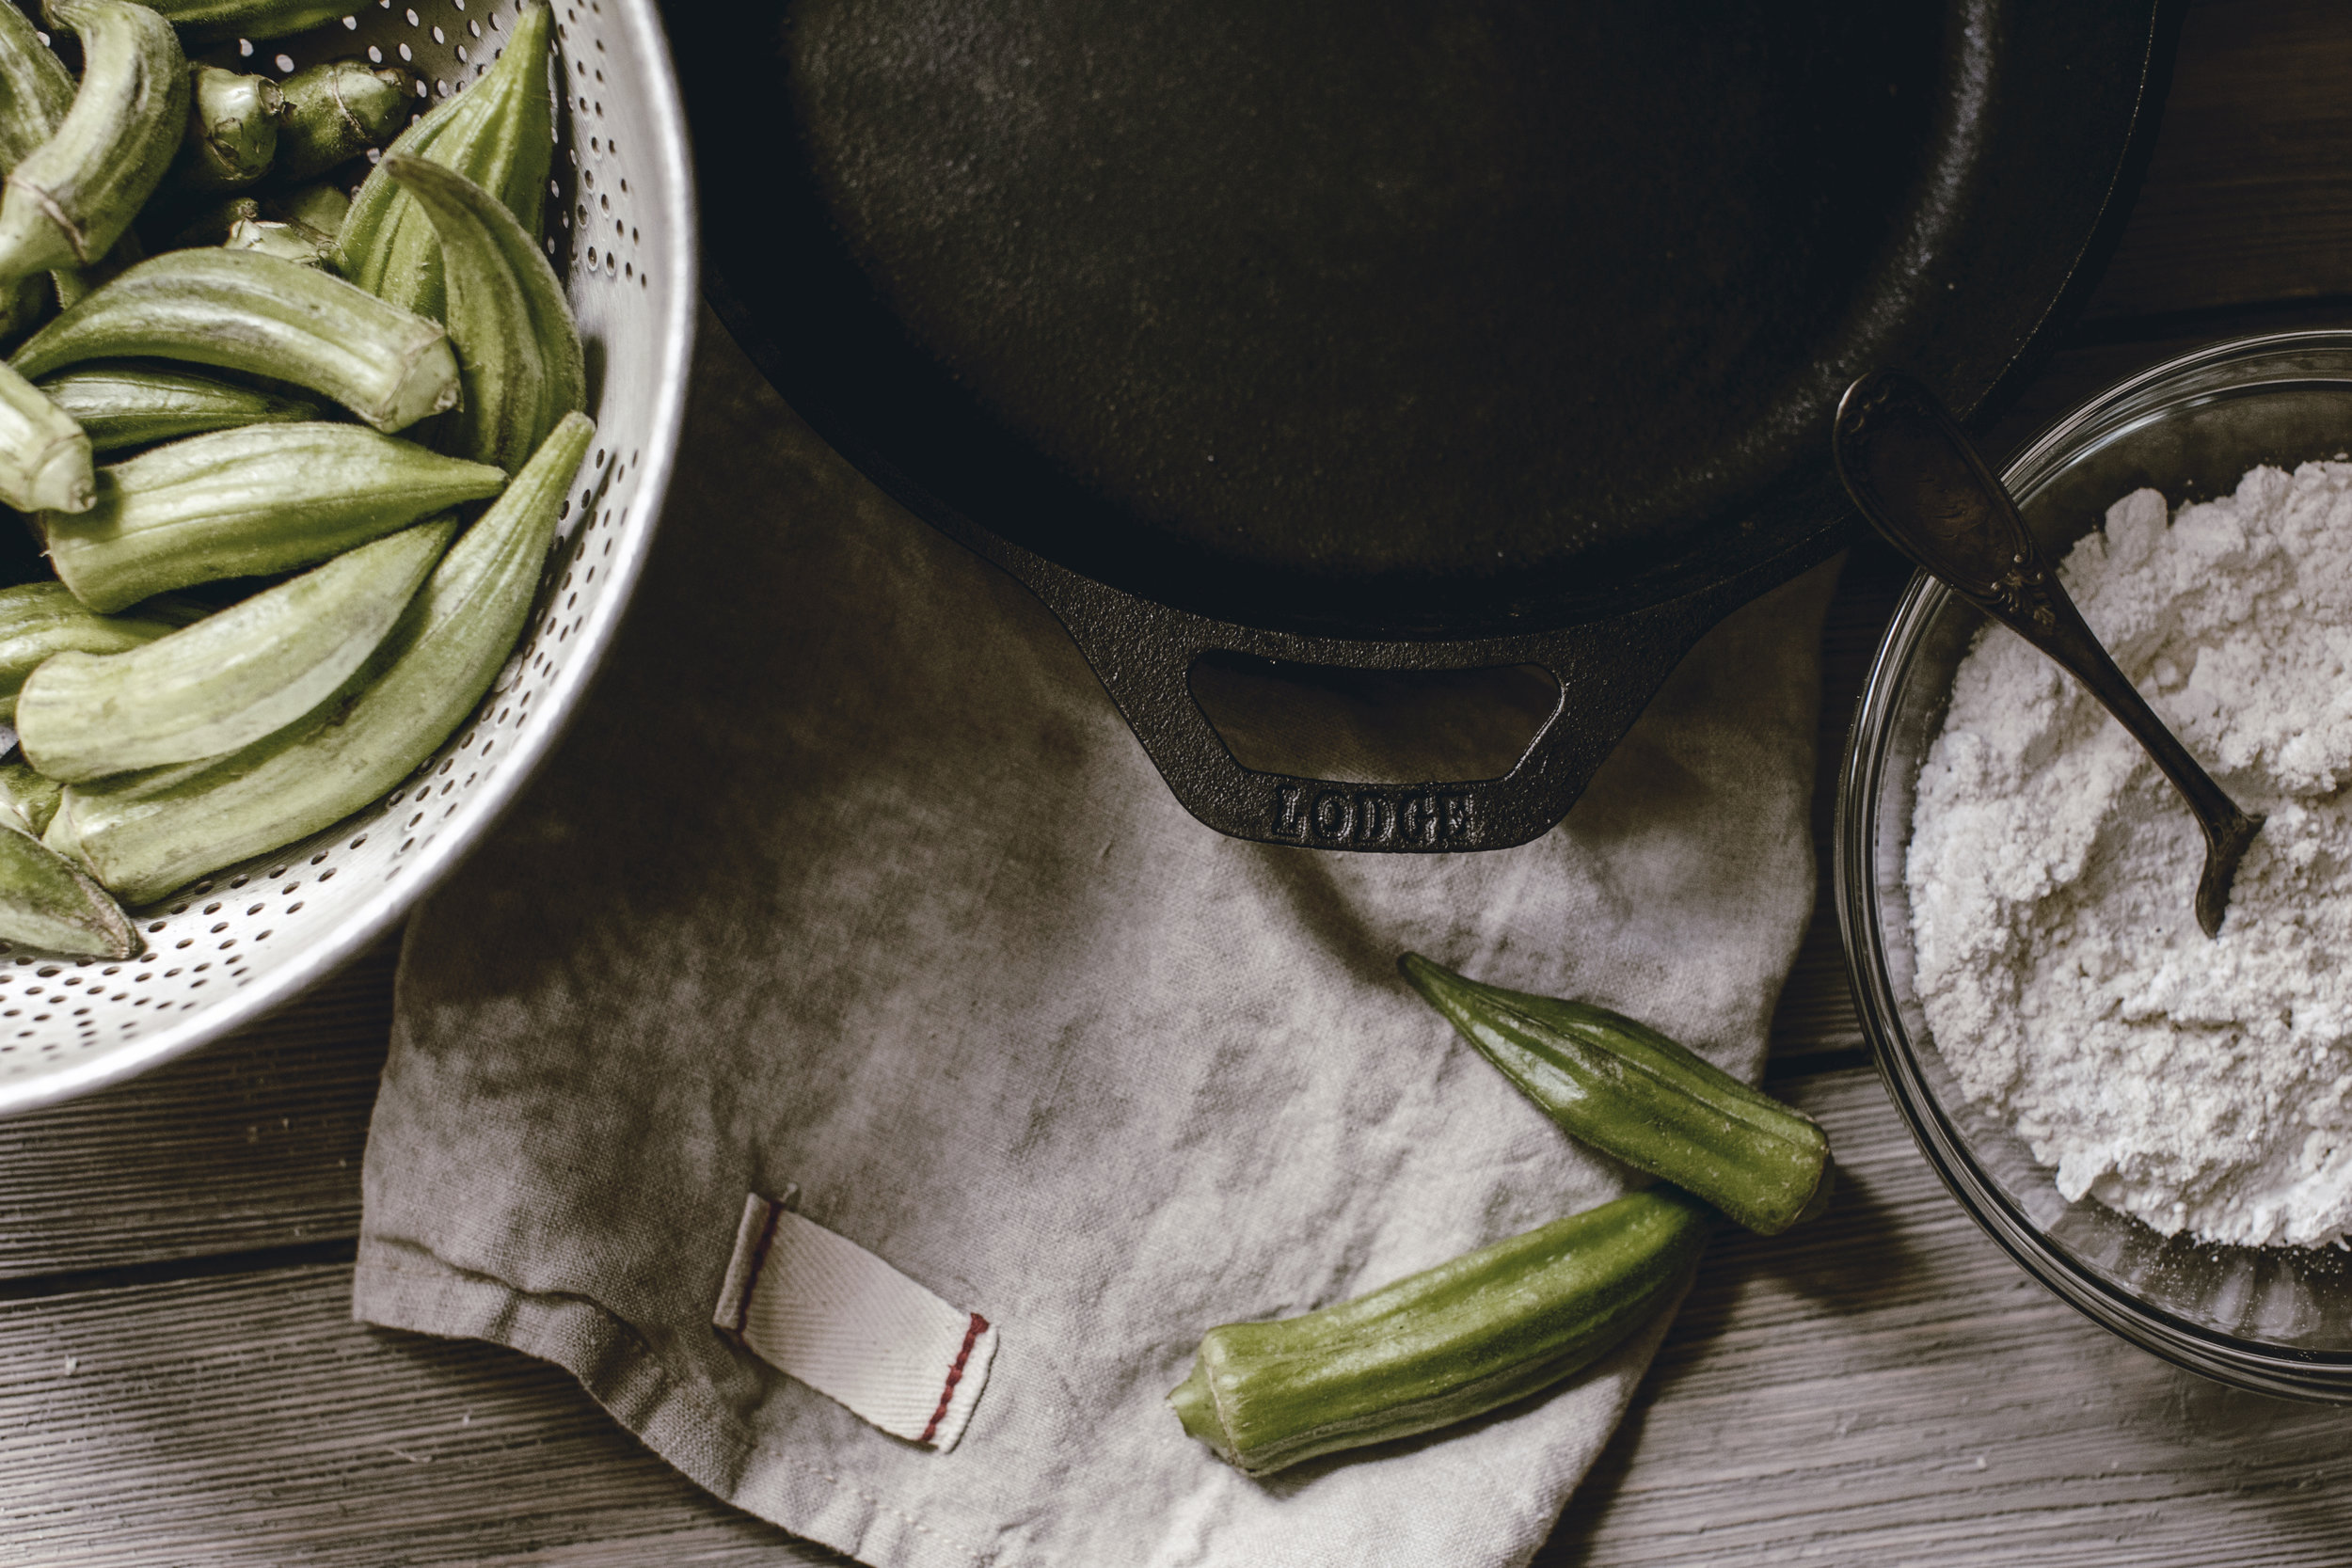 lodge cast iron pan for fried okra / heirloomed